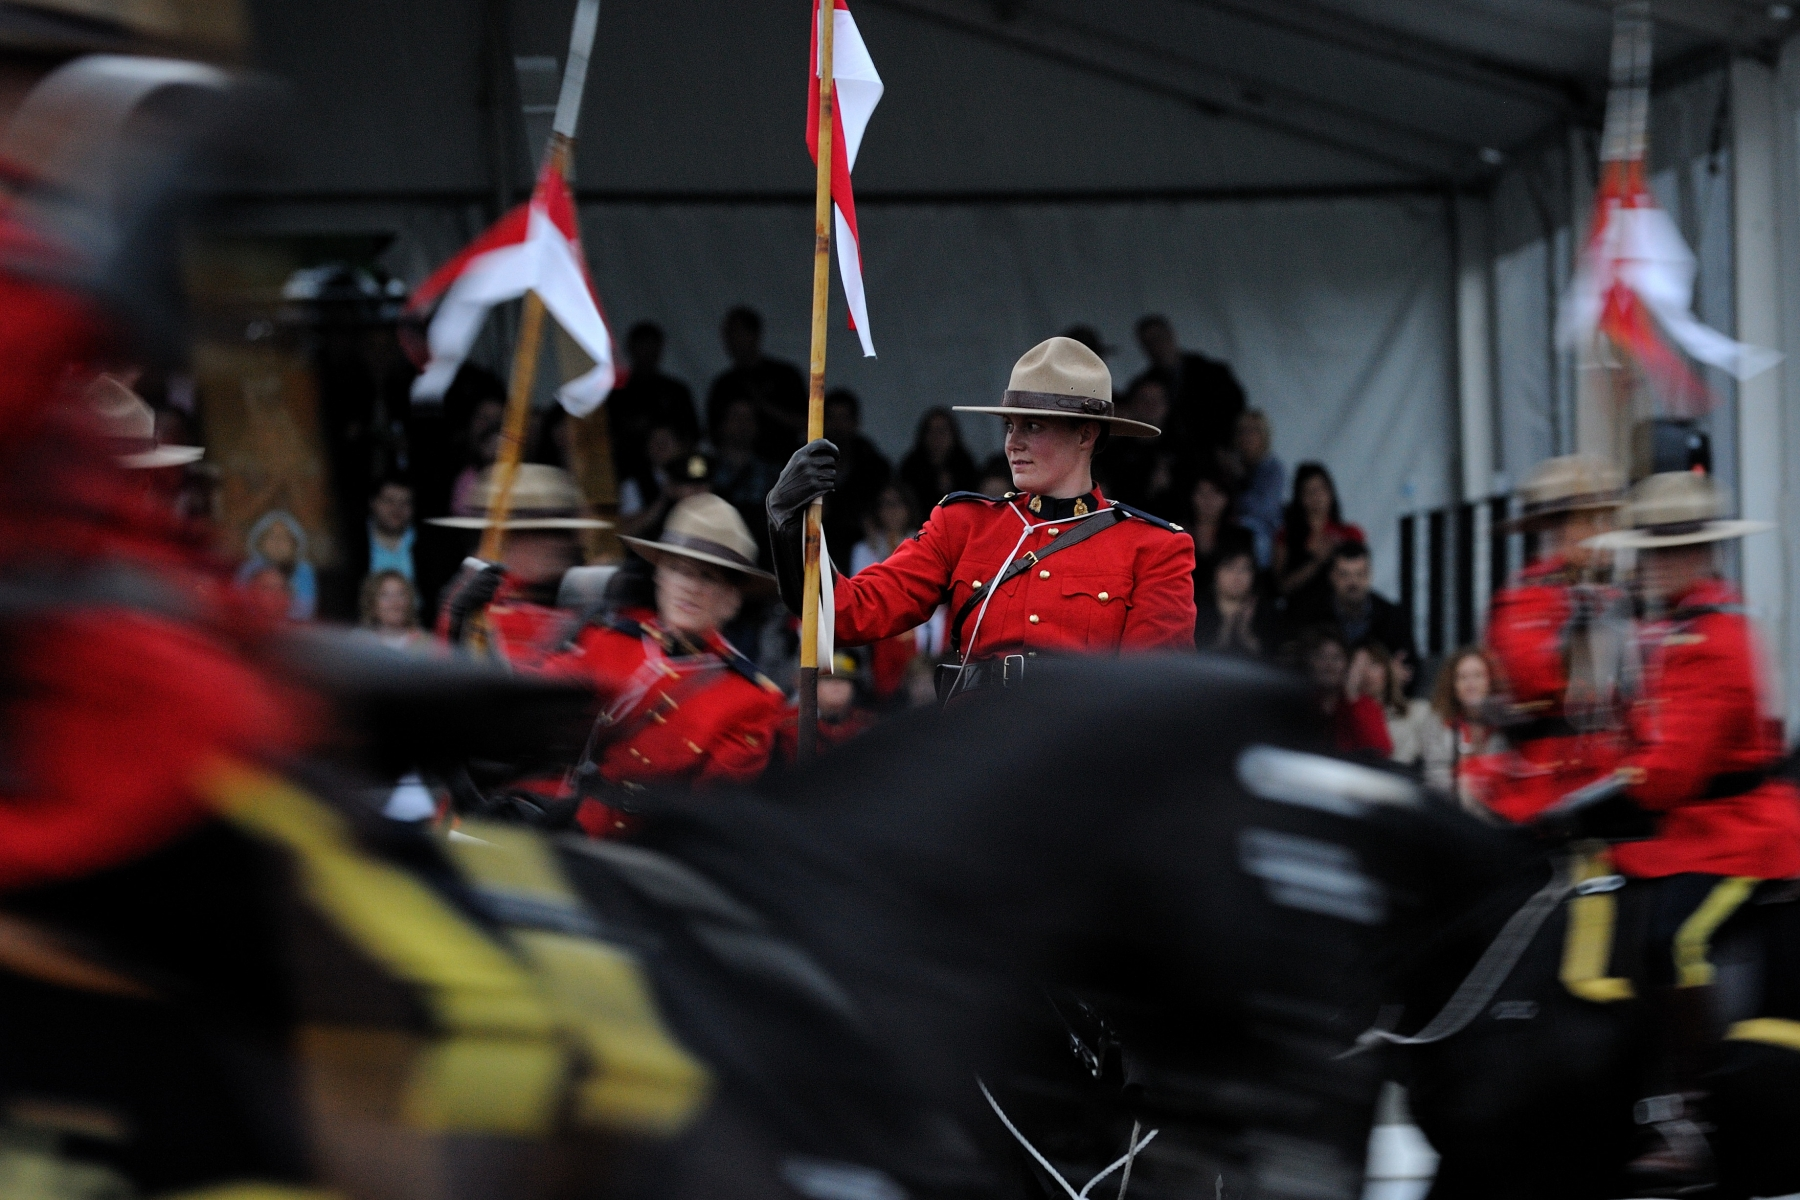 Representing a colourful tradition and ceremony through the horse and the scarlet uniform, the RCMP created a spectacle known around the world as the Musical Ride. The Musical Ride provides Canadians, from coast to coast, with the opportunity to experience part of our heritage and national identity.